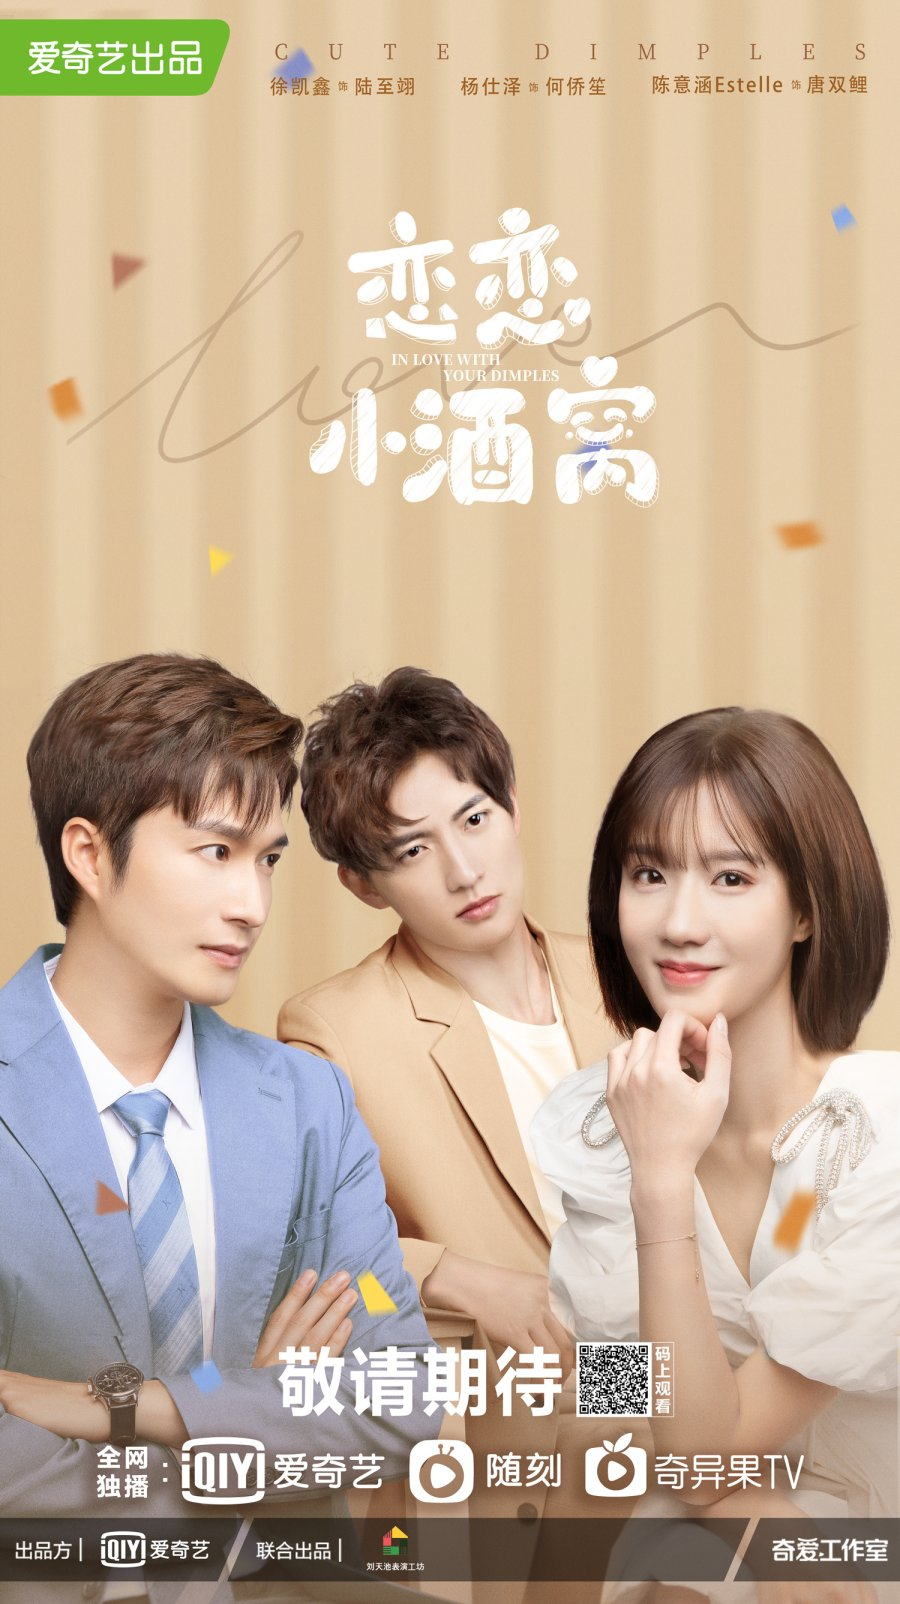 Quyến Luyến Lúm Đông Tiền - In Love With Your Dimples (2021)